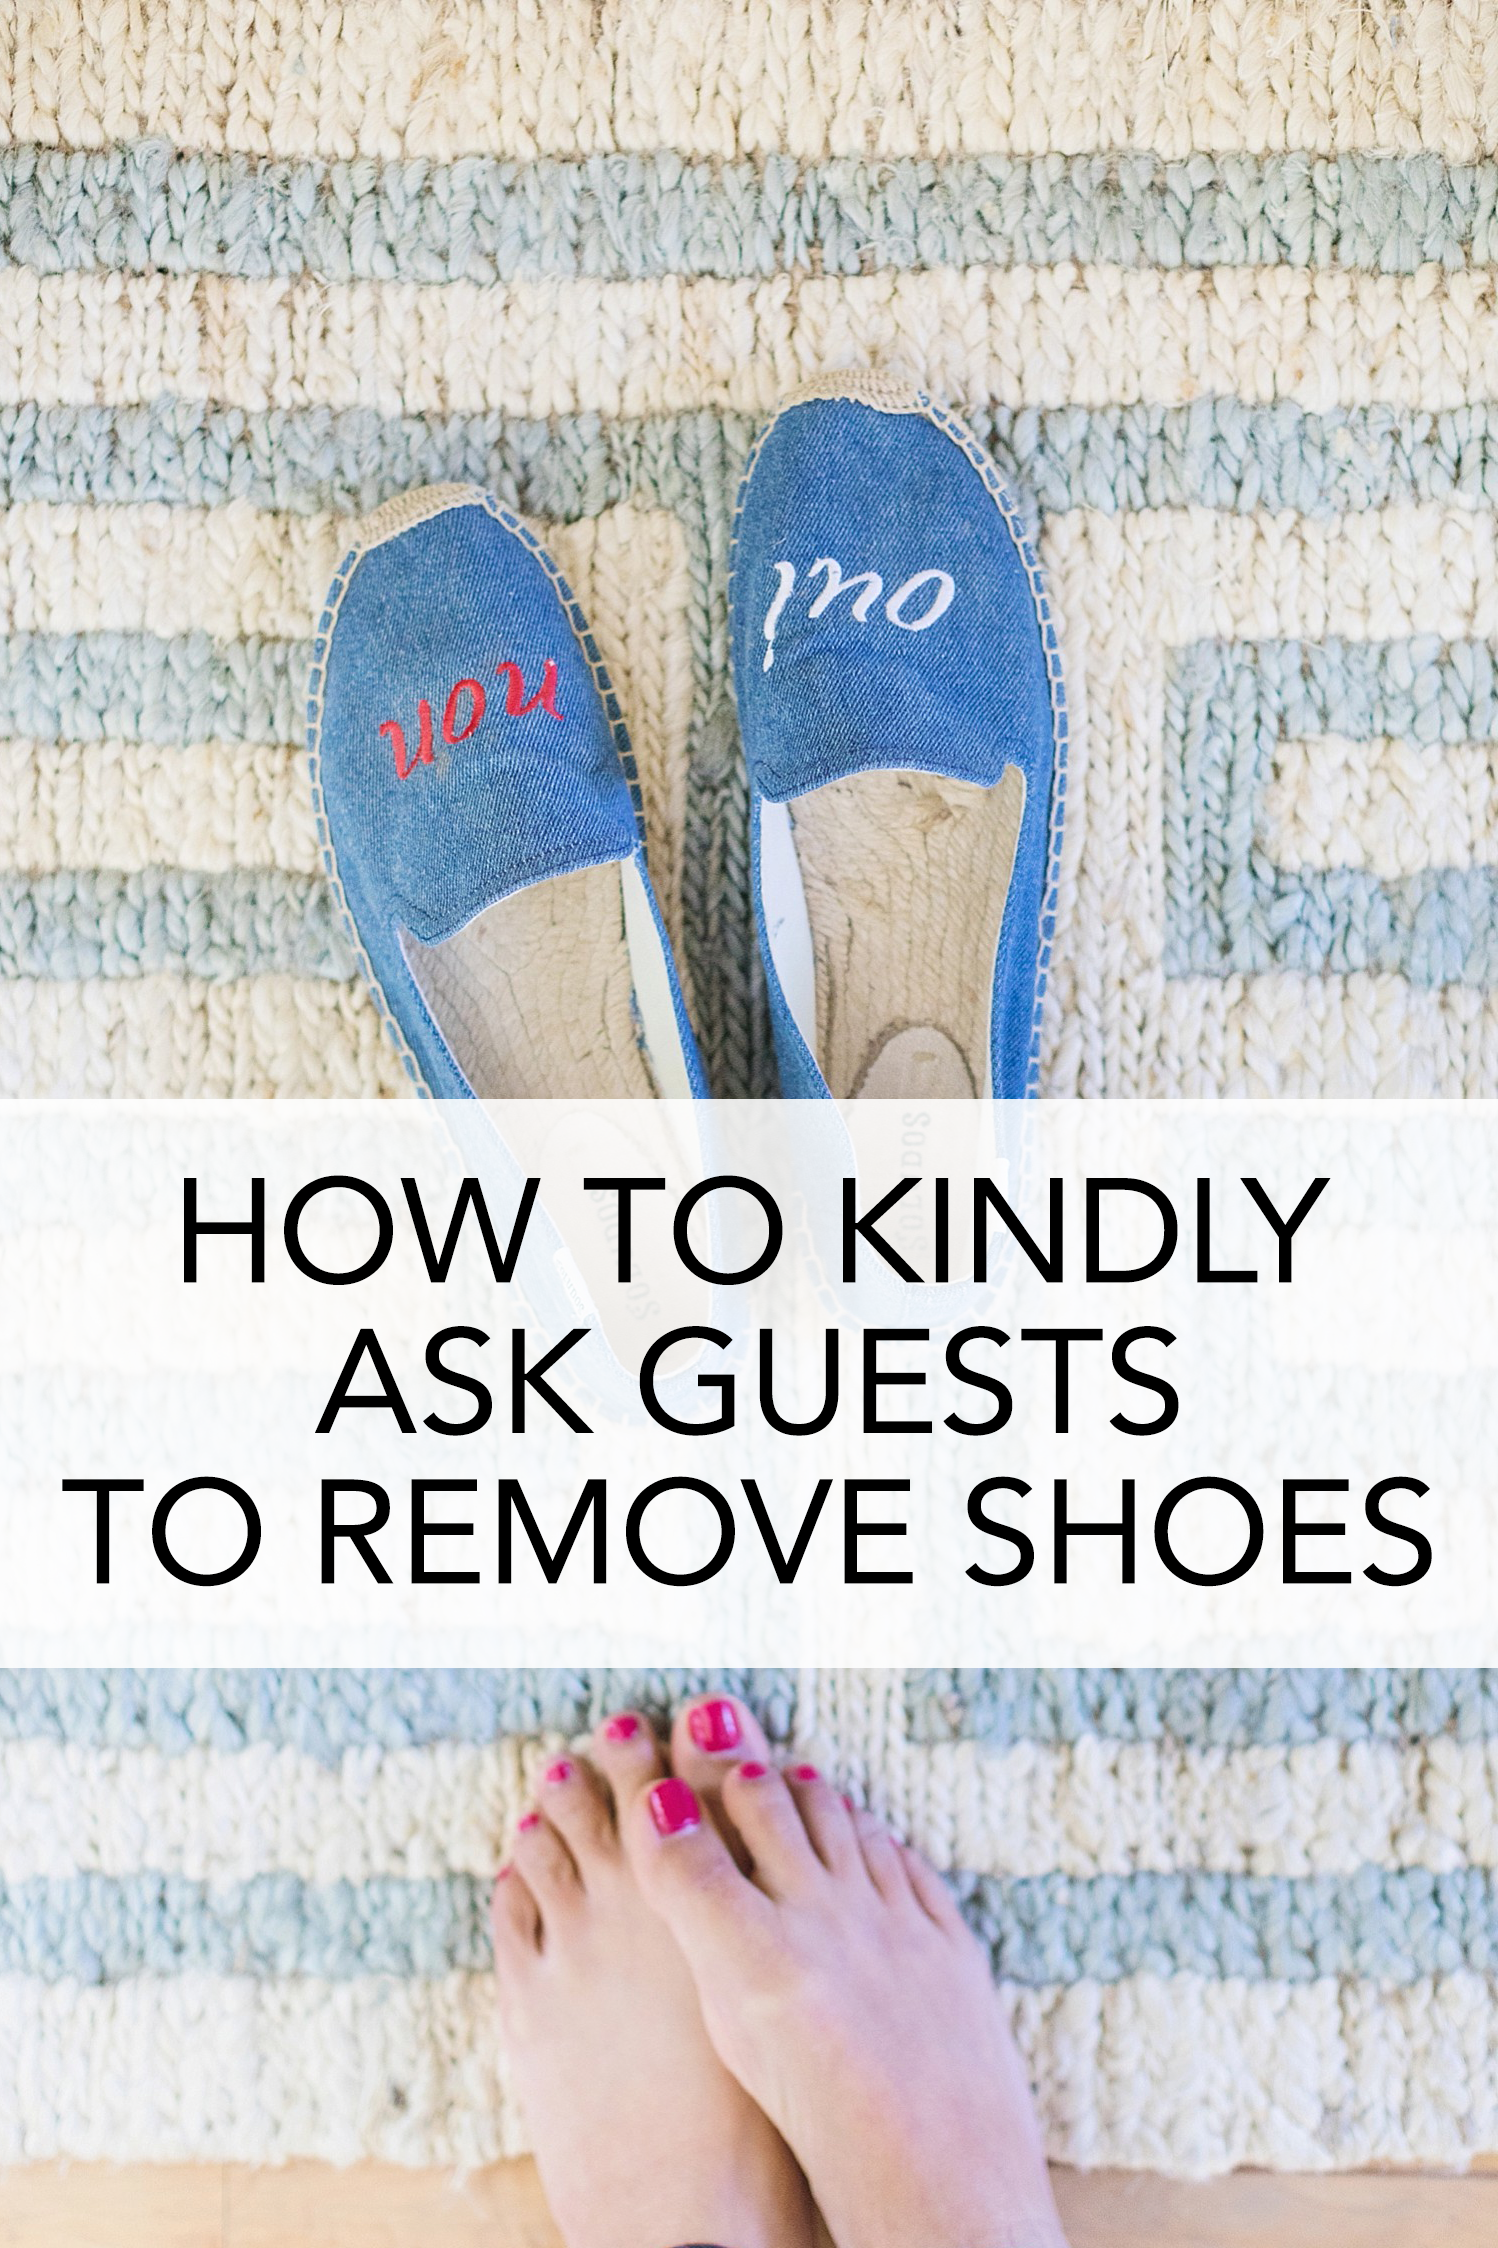 How to enforce a no shoe policy with guests: Tips on politely asking guests to remove shoes ahead of time without feeling awkward